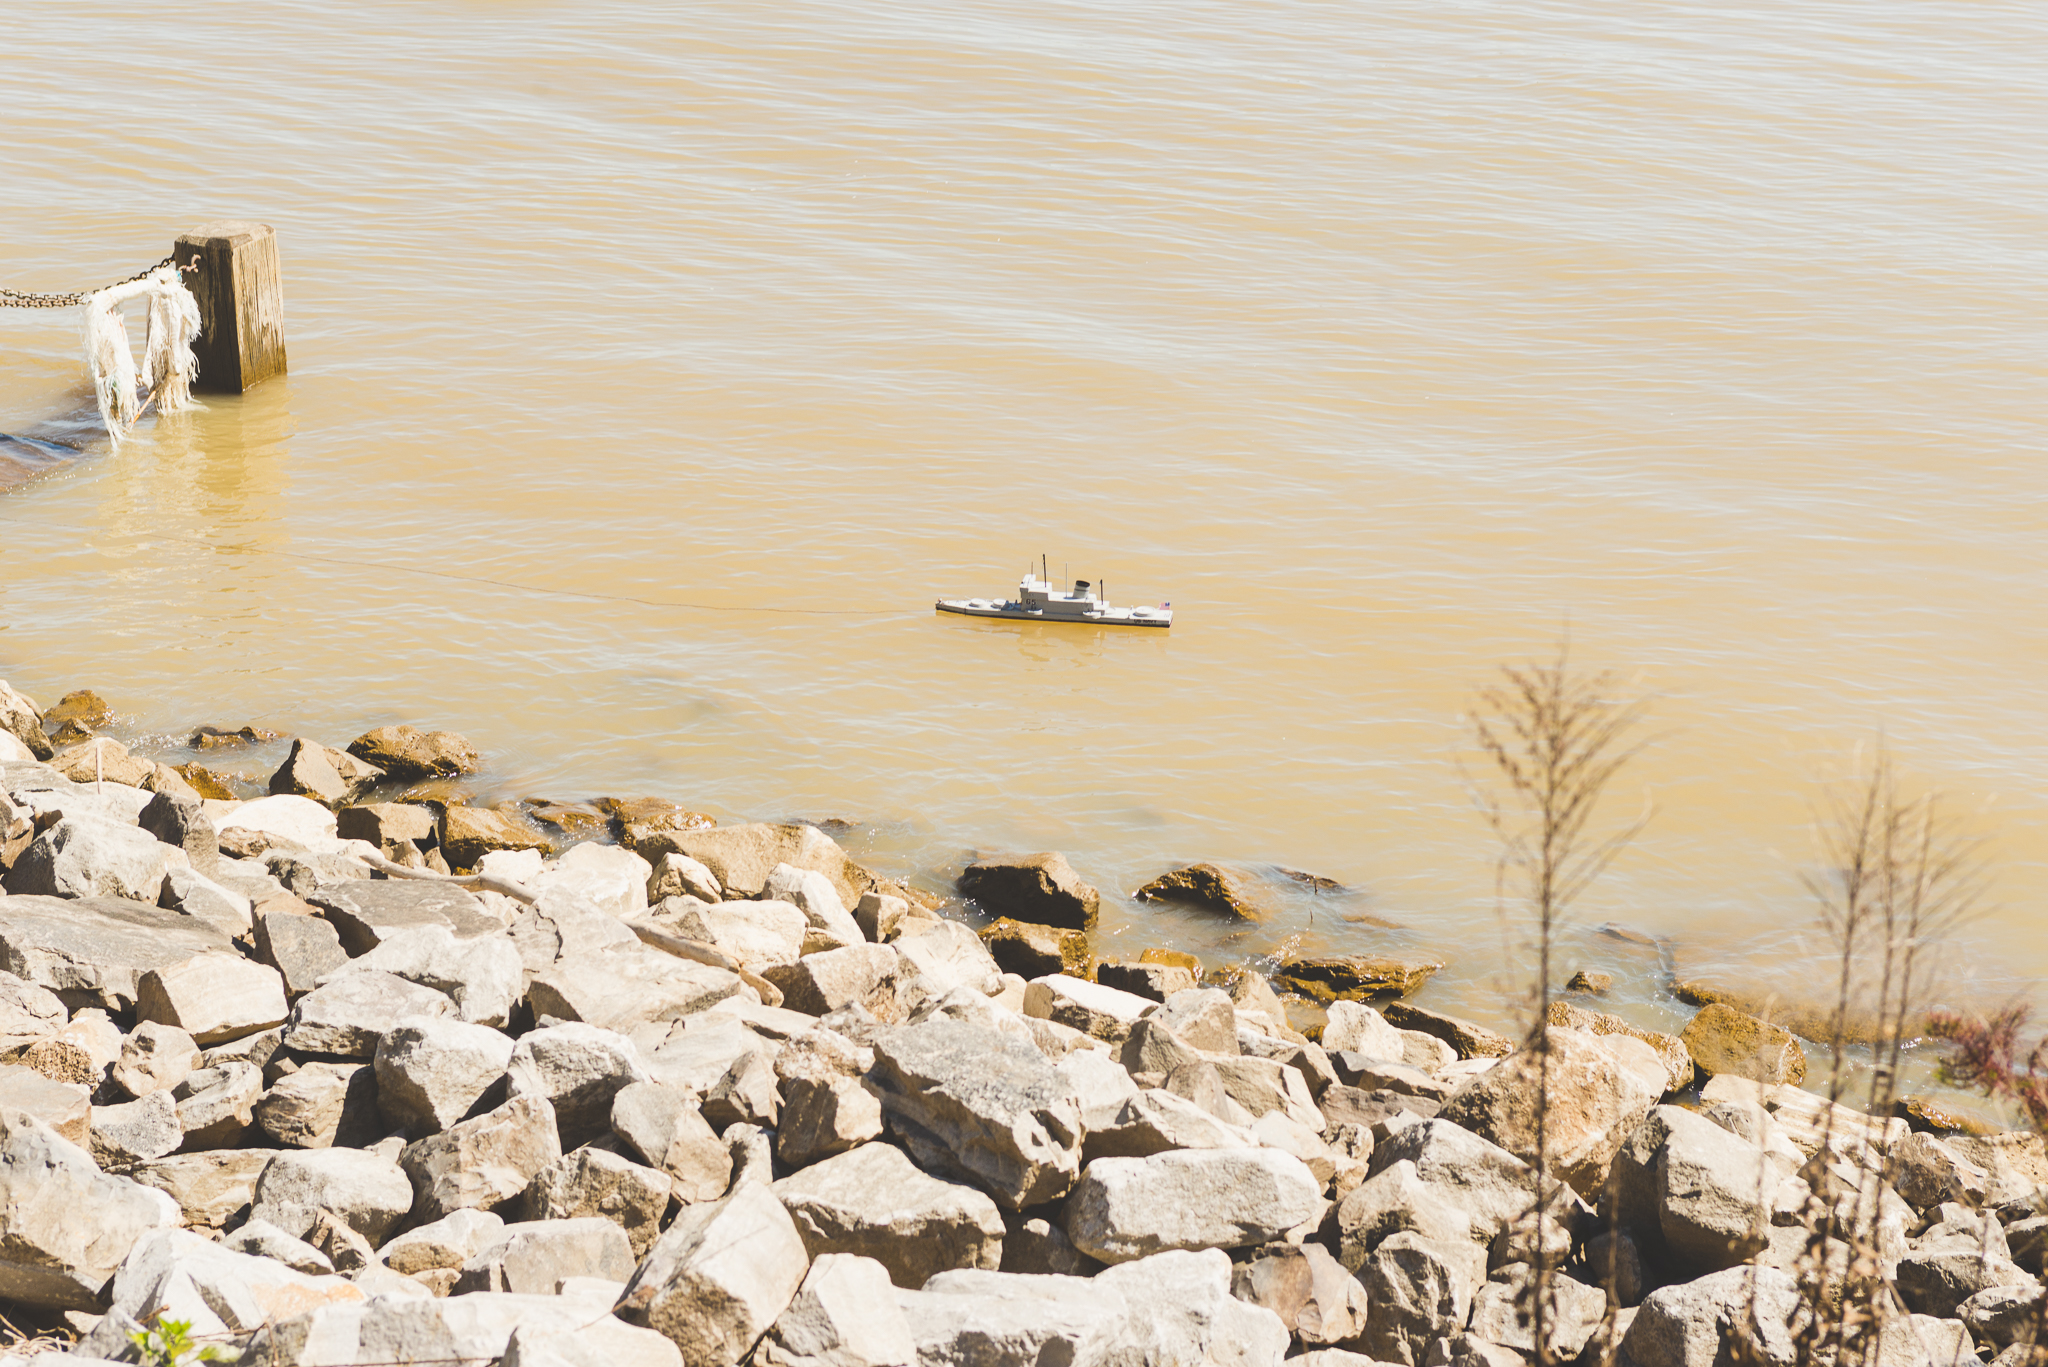 Toy boat in the Mississippi River. / 2/27/16 / New Orleans, LA